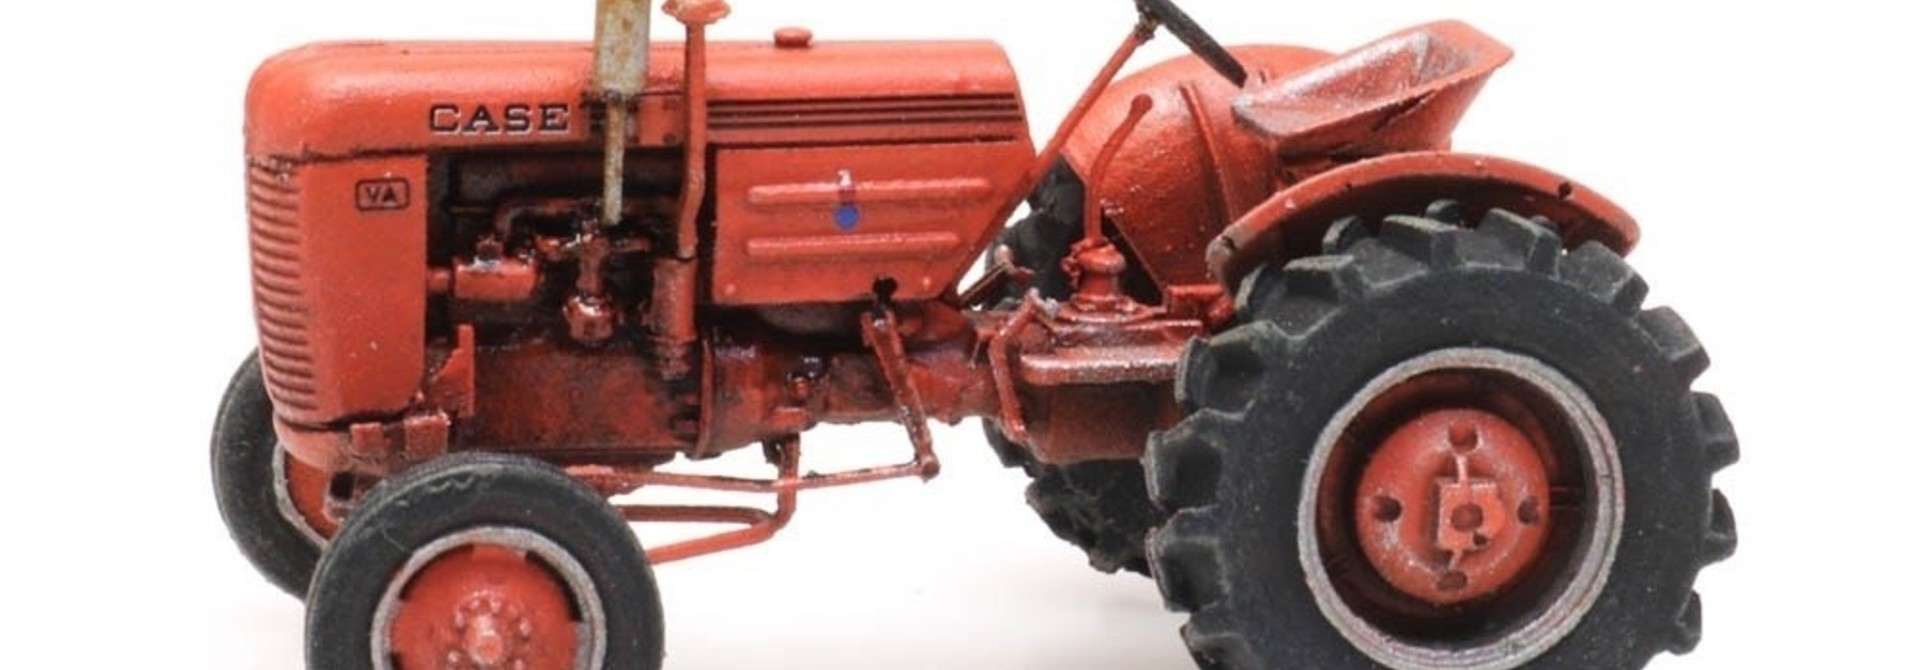 10381 Case tractor